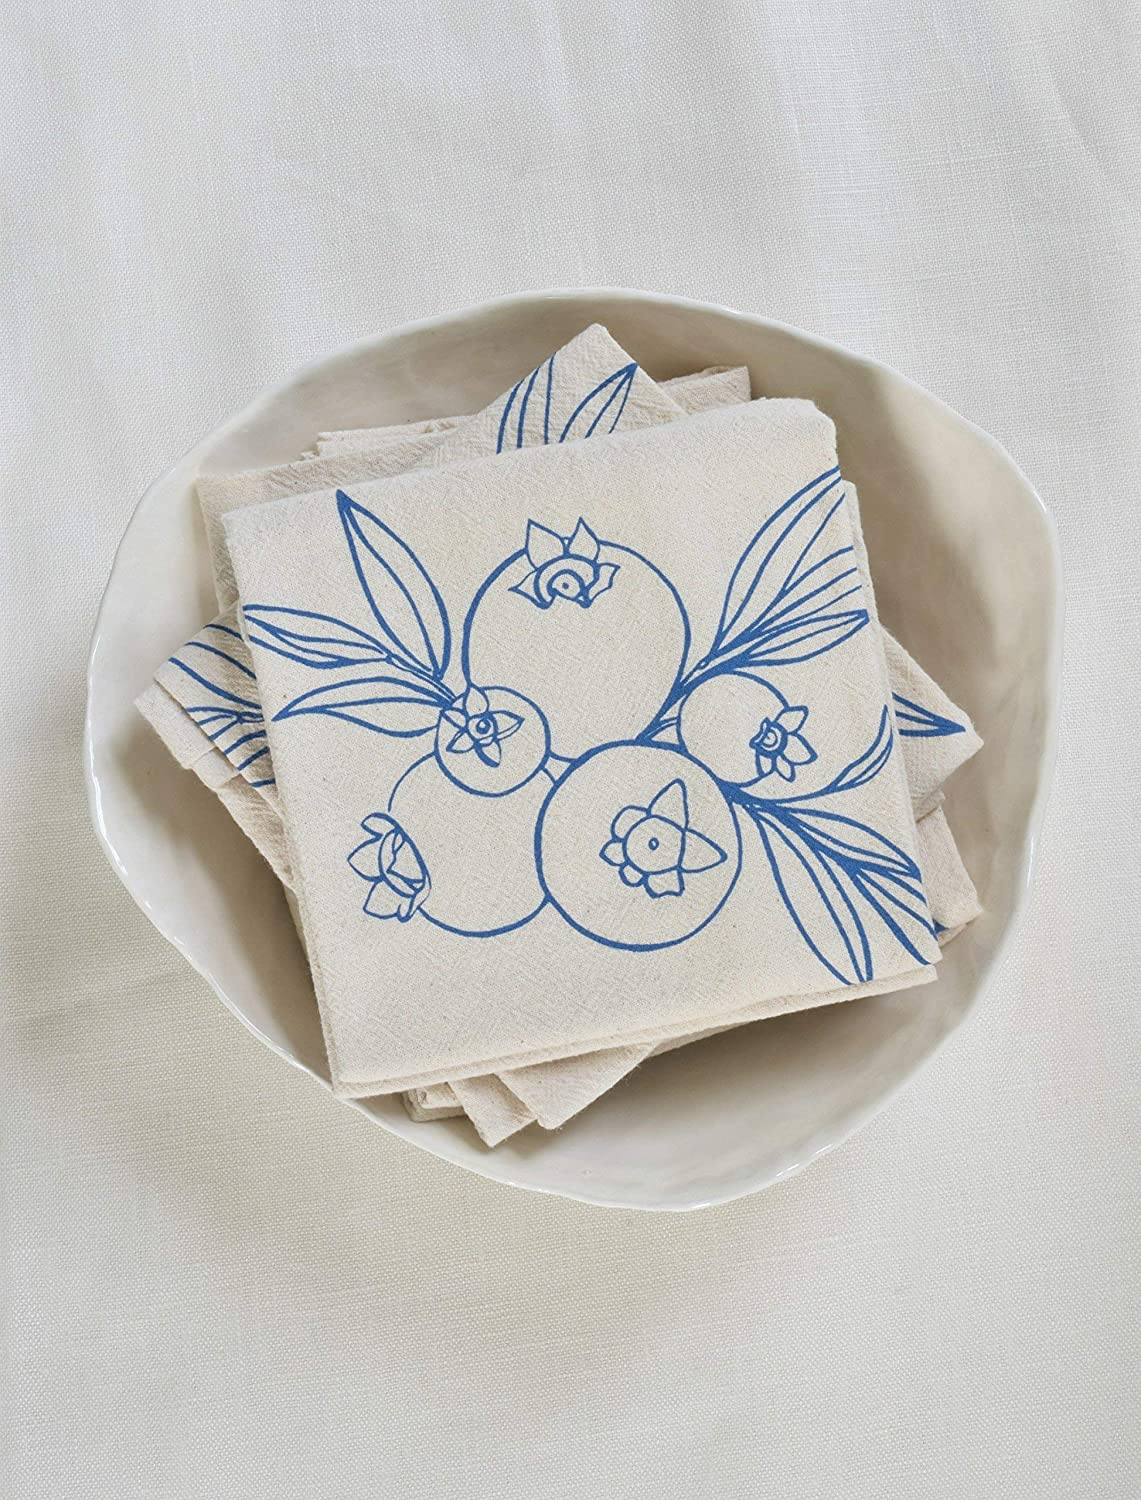 Cloth Napkins - Set of 4 - Wild Blueberry Design in Blue-violet - Organic Cotton